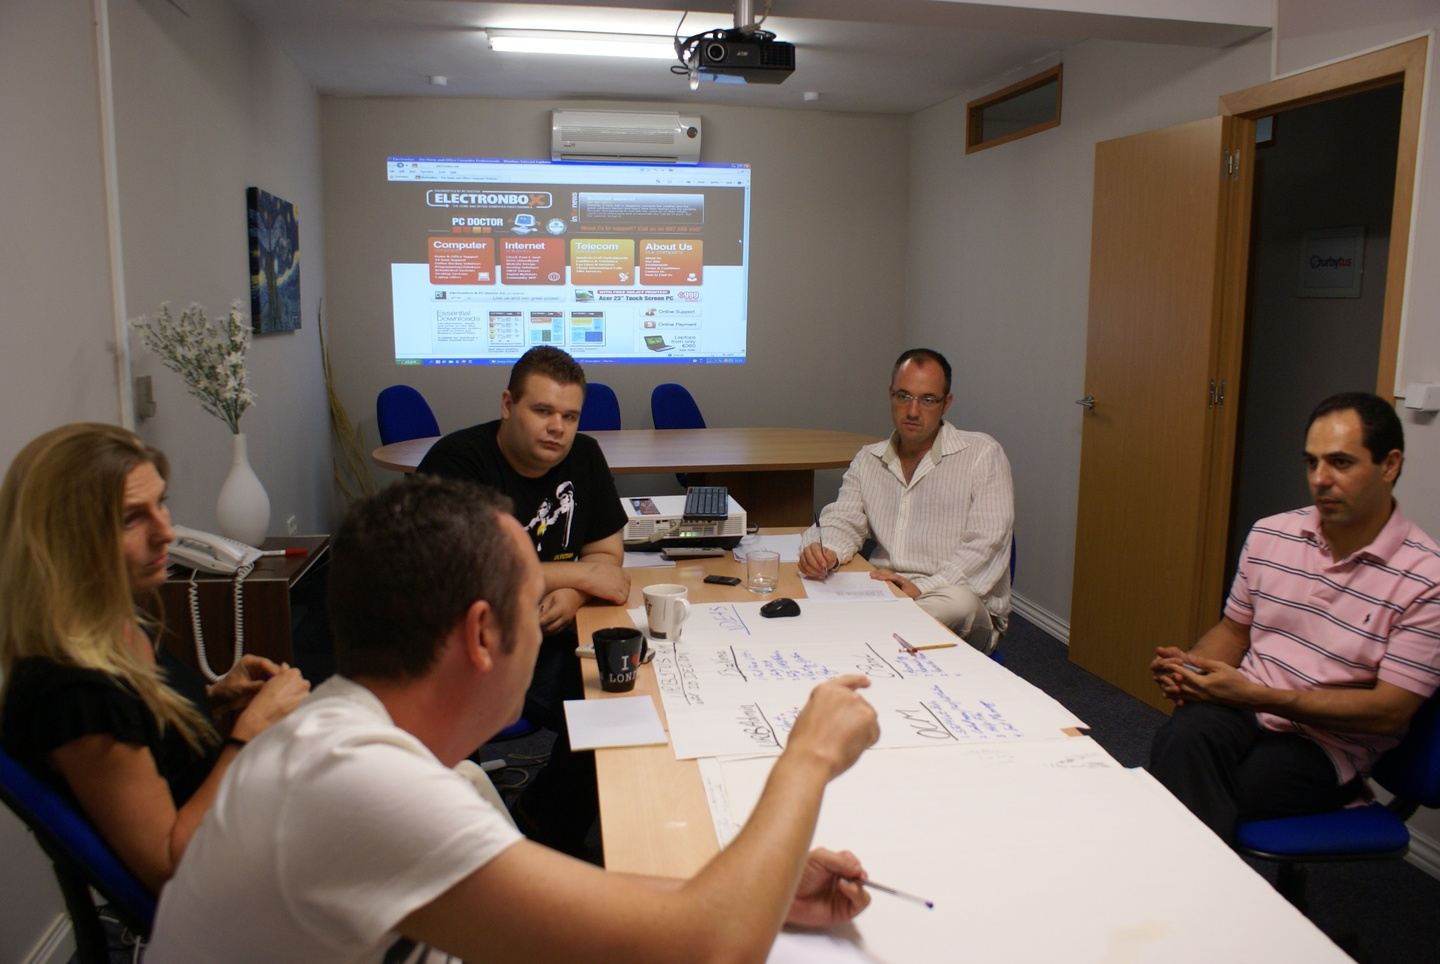 Malaga training rooms Coworking Space Business Development Centre image 0